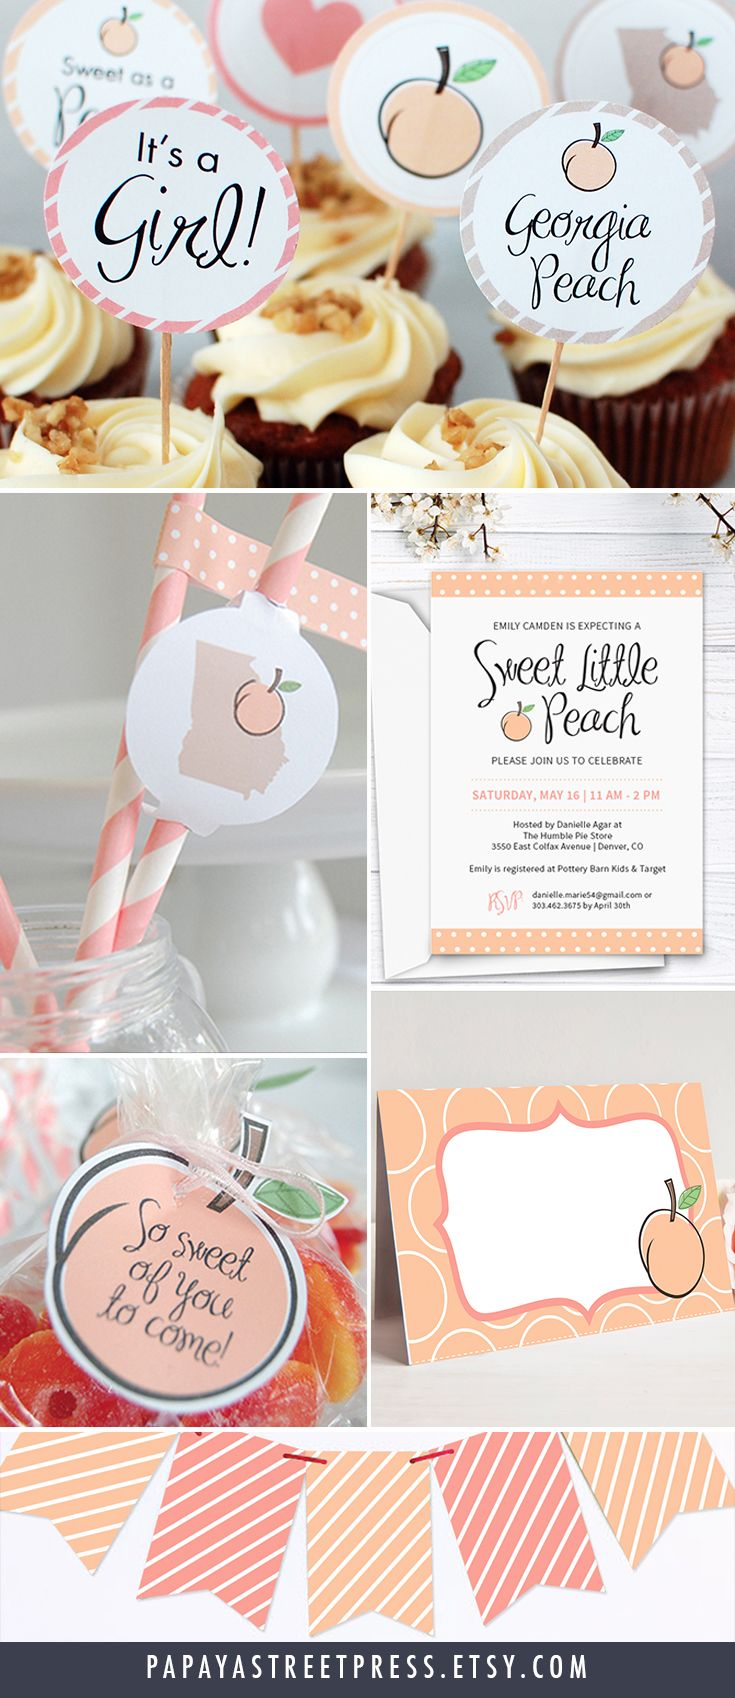 Host a memorable Georgia Peach baby shower with this adorable sweet as a peach set, including cupcake toppers and wrappers, straw flags, peach favors, food tents, a decorative banner, and an editable invitation. This set can be adapted for a Georgia peach bridal shower as well.